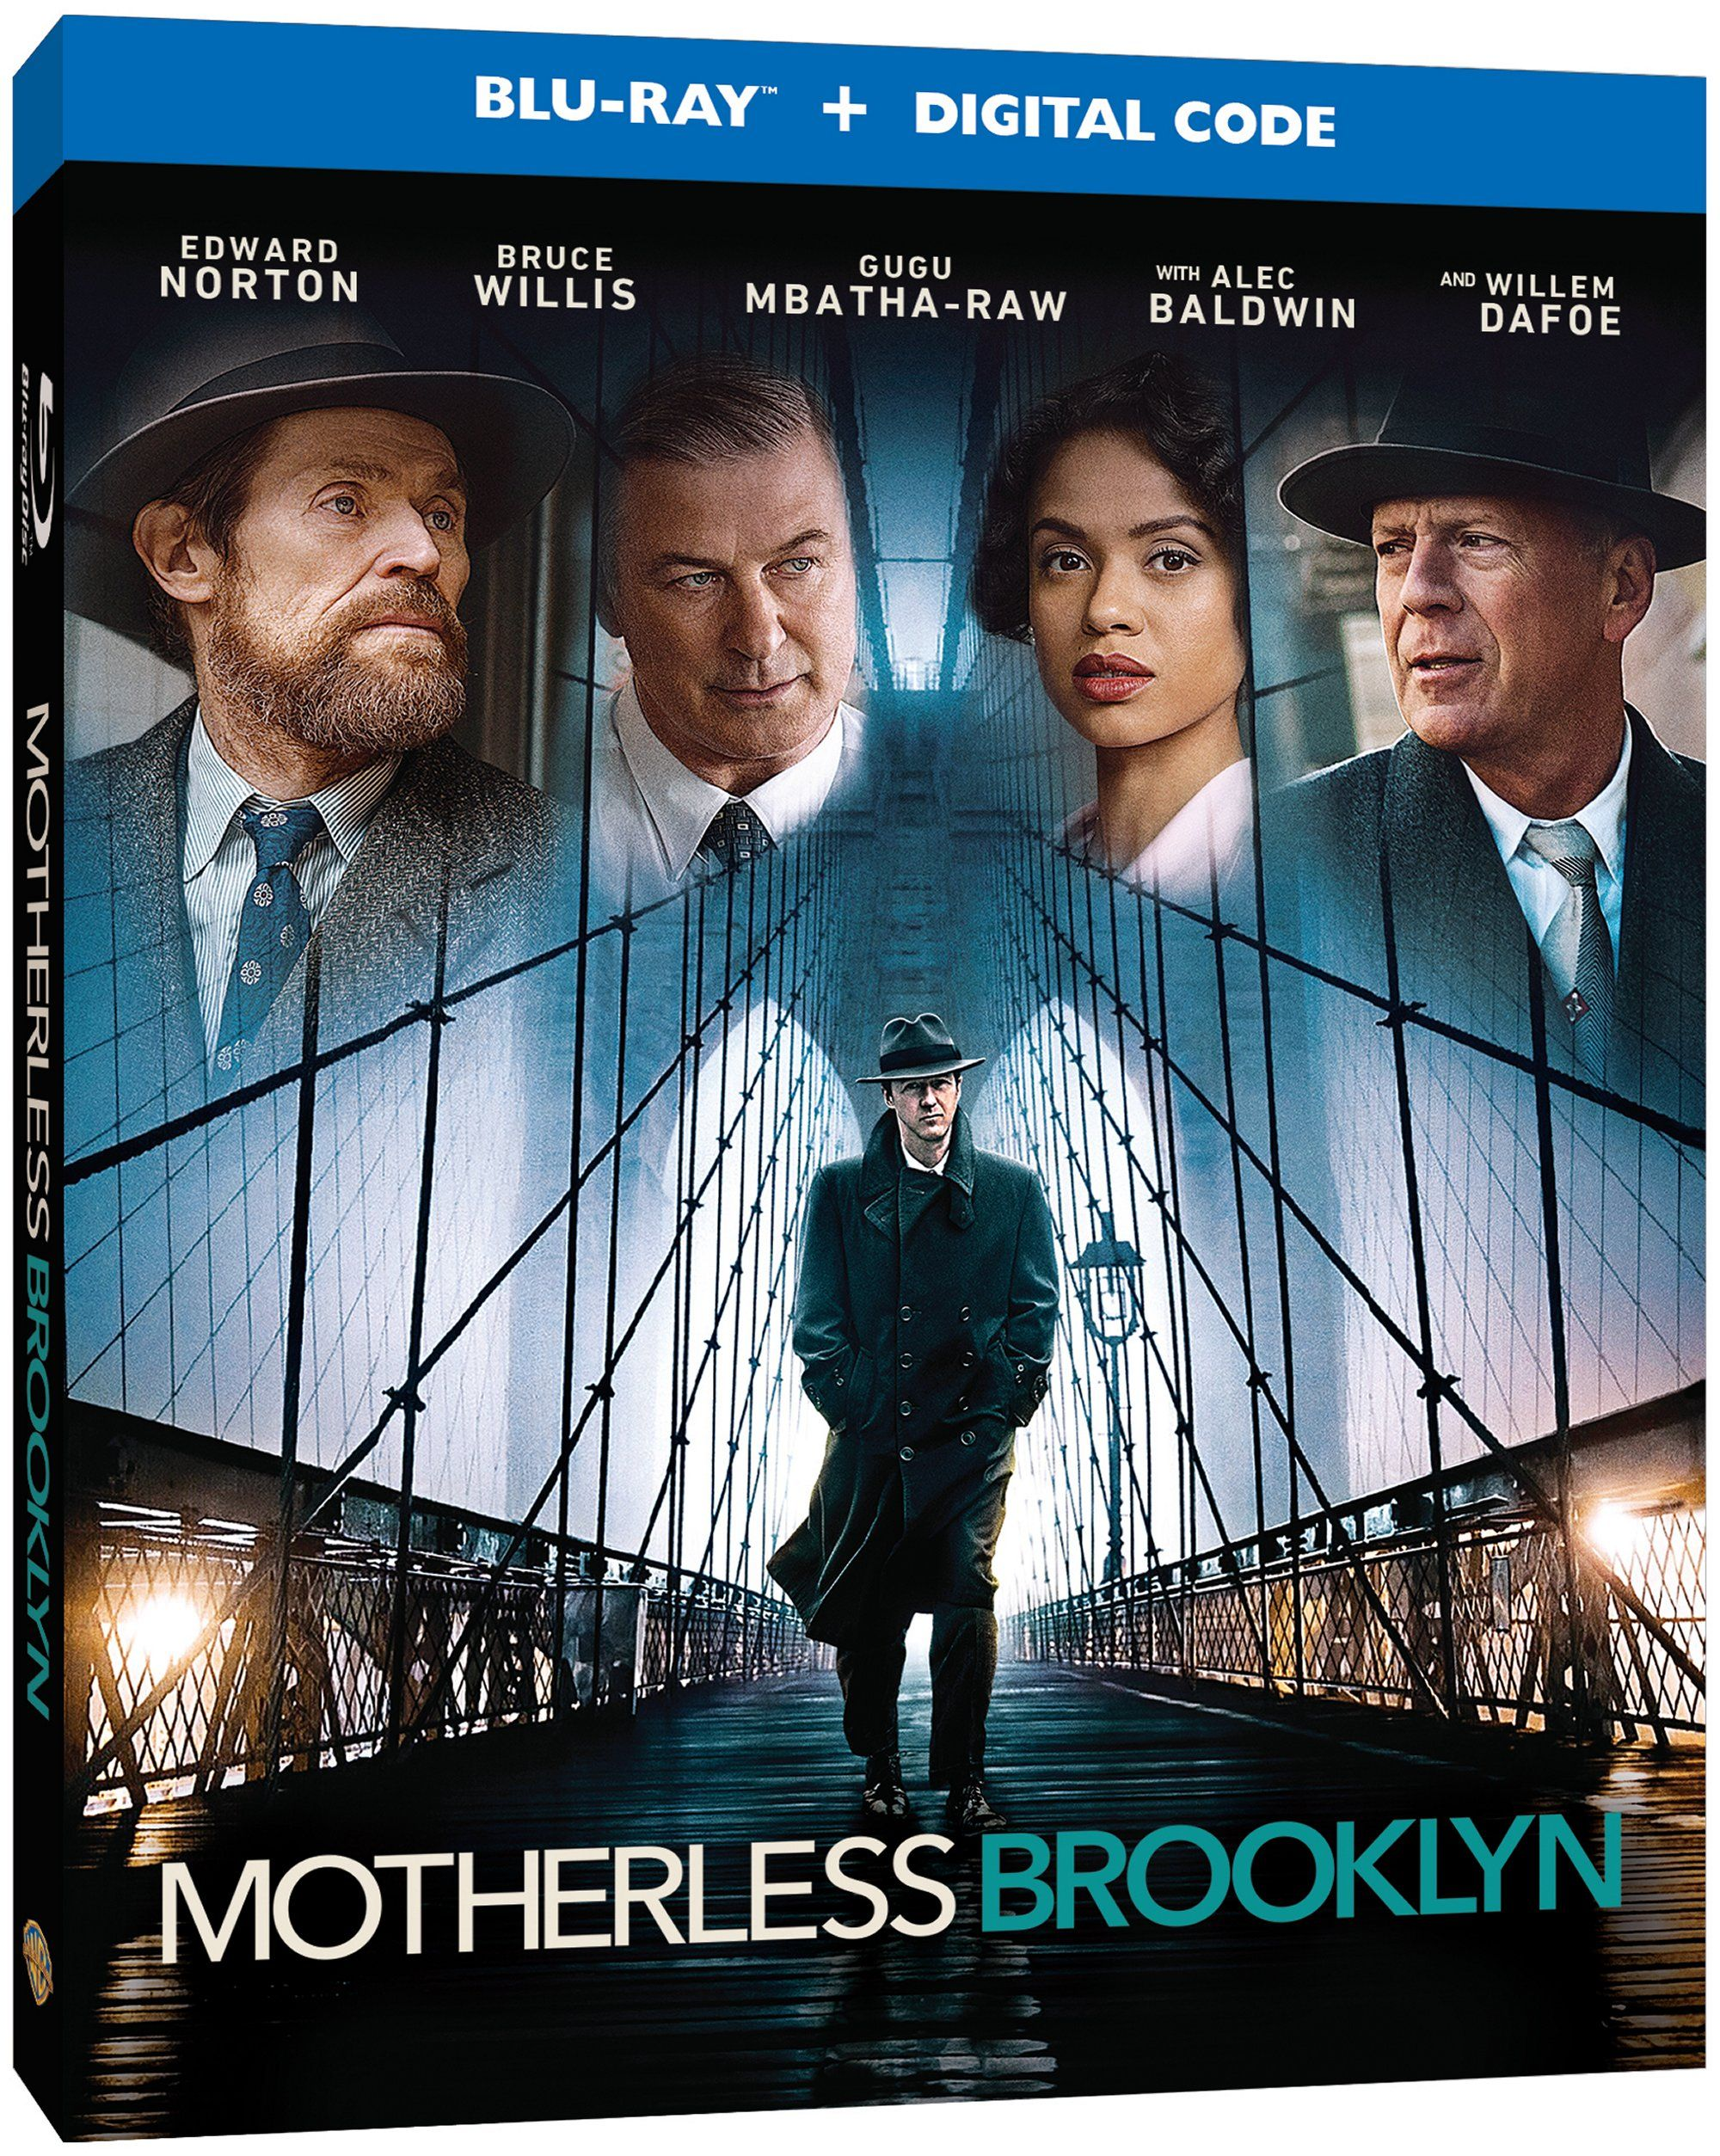 Motherless Brooklyn Blu-ray Review